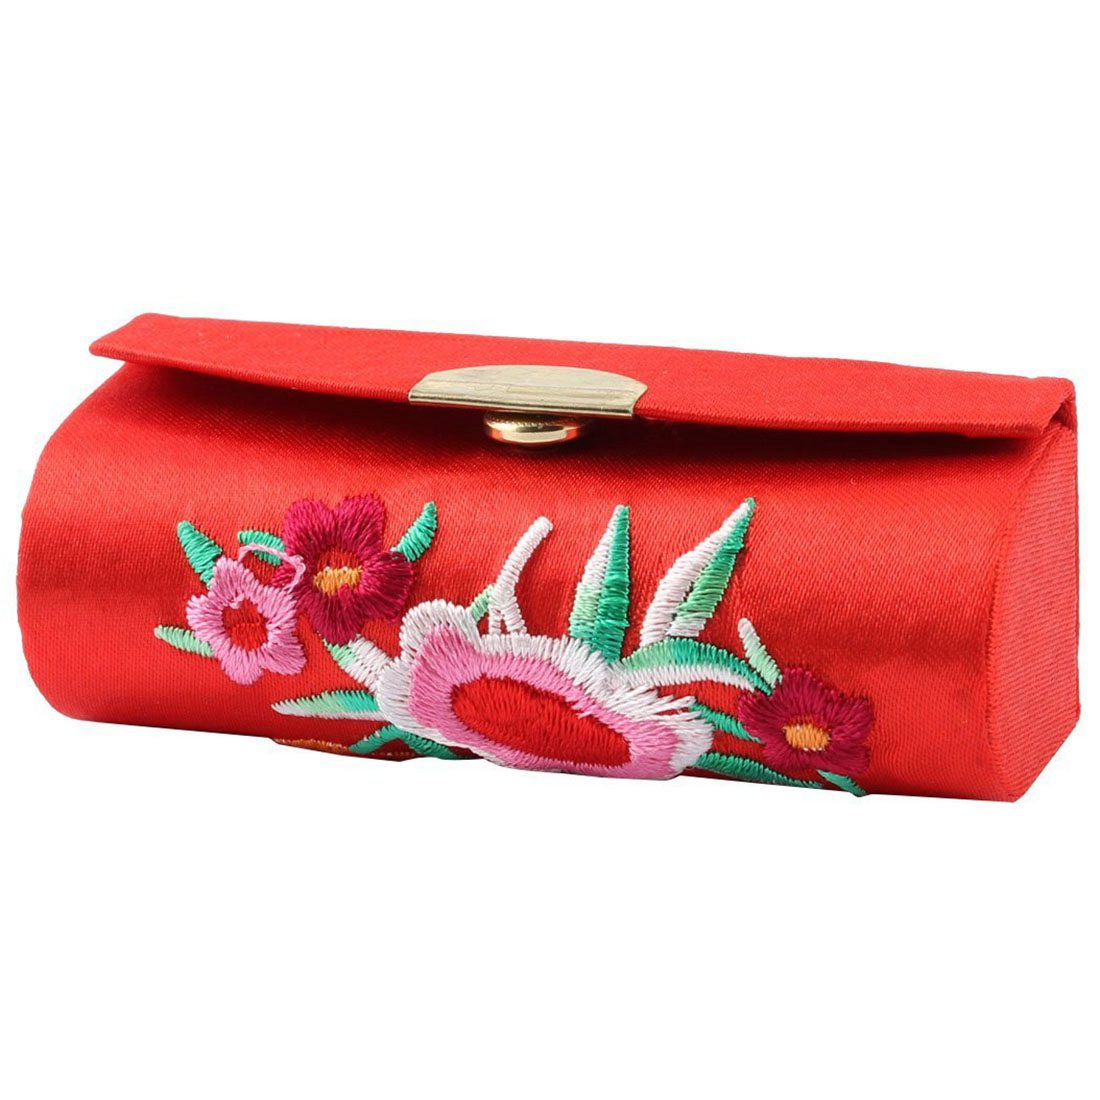 Button Floral Chinese Embroidery Lipstick Case + Mirror, Metal red фен elchim 8th sense red lipstick 03082 07